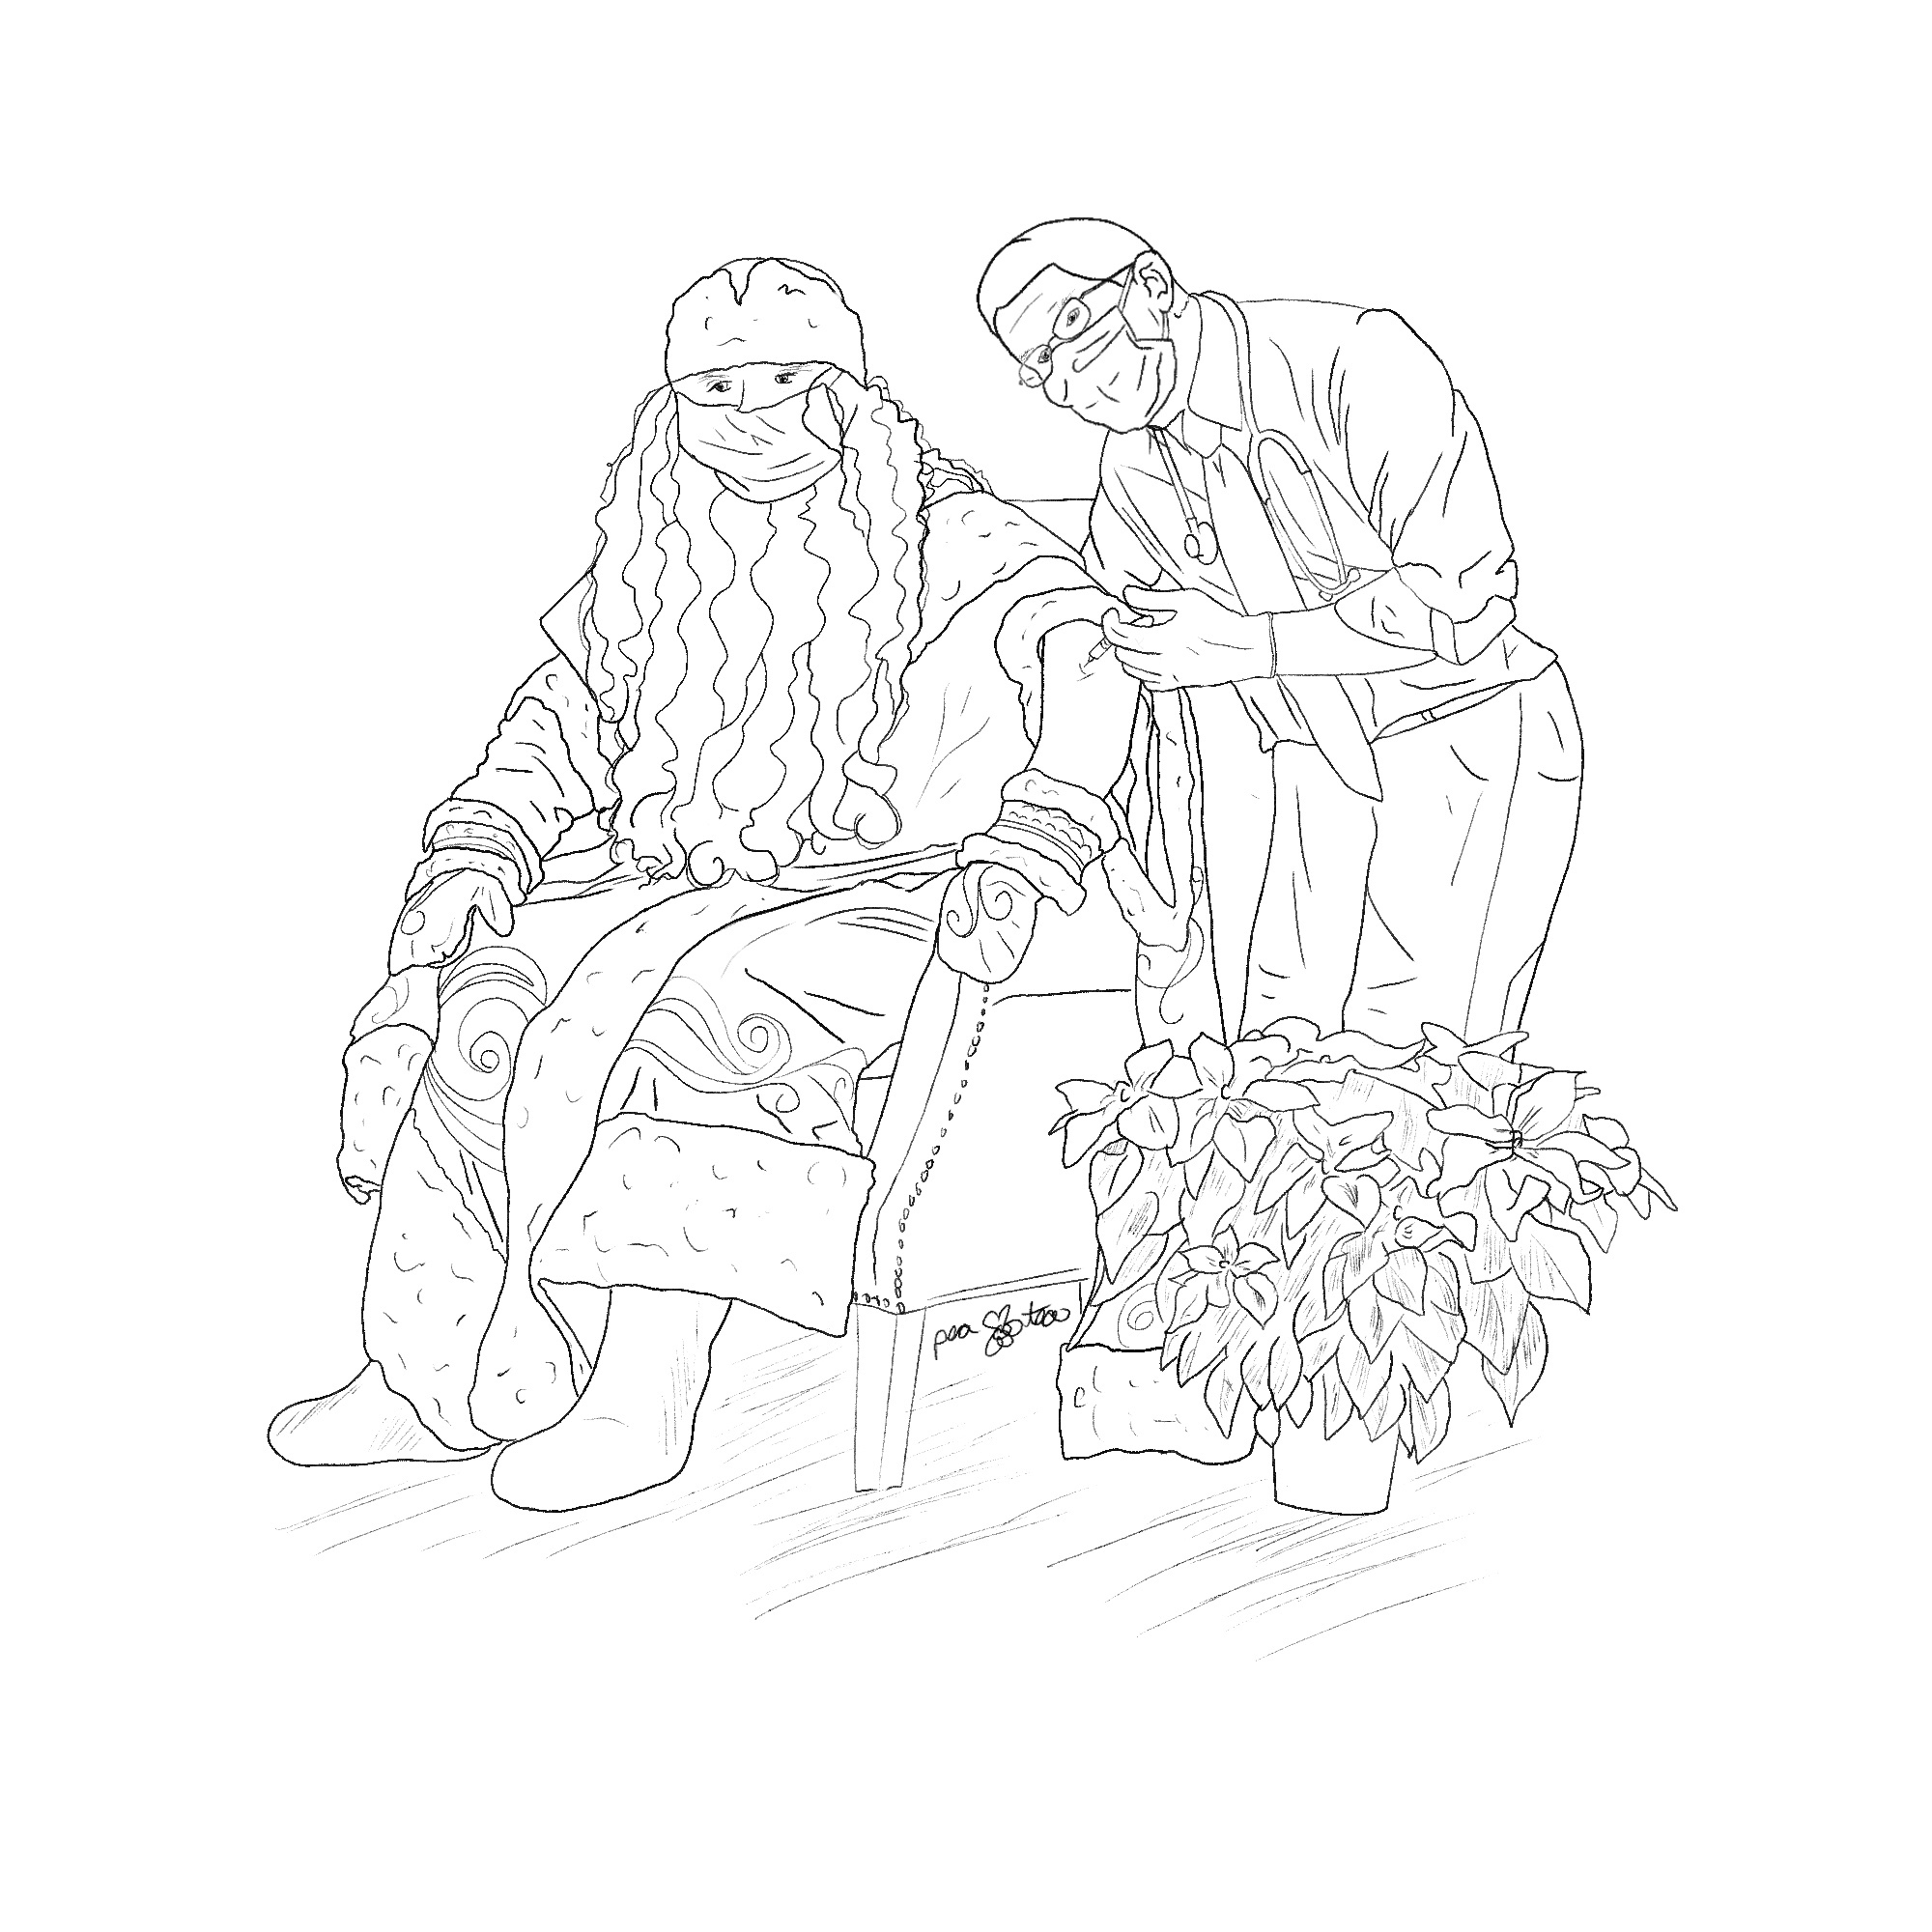 Pencil sketch Dr. Anthony Facui giving a victorian style Santa Claus the Covid-19 vaccine.